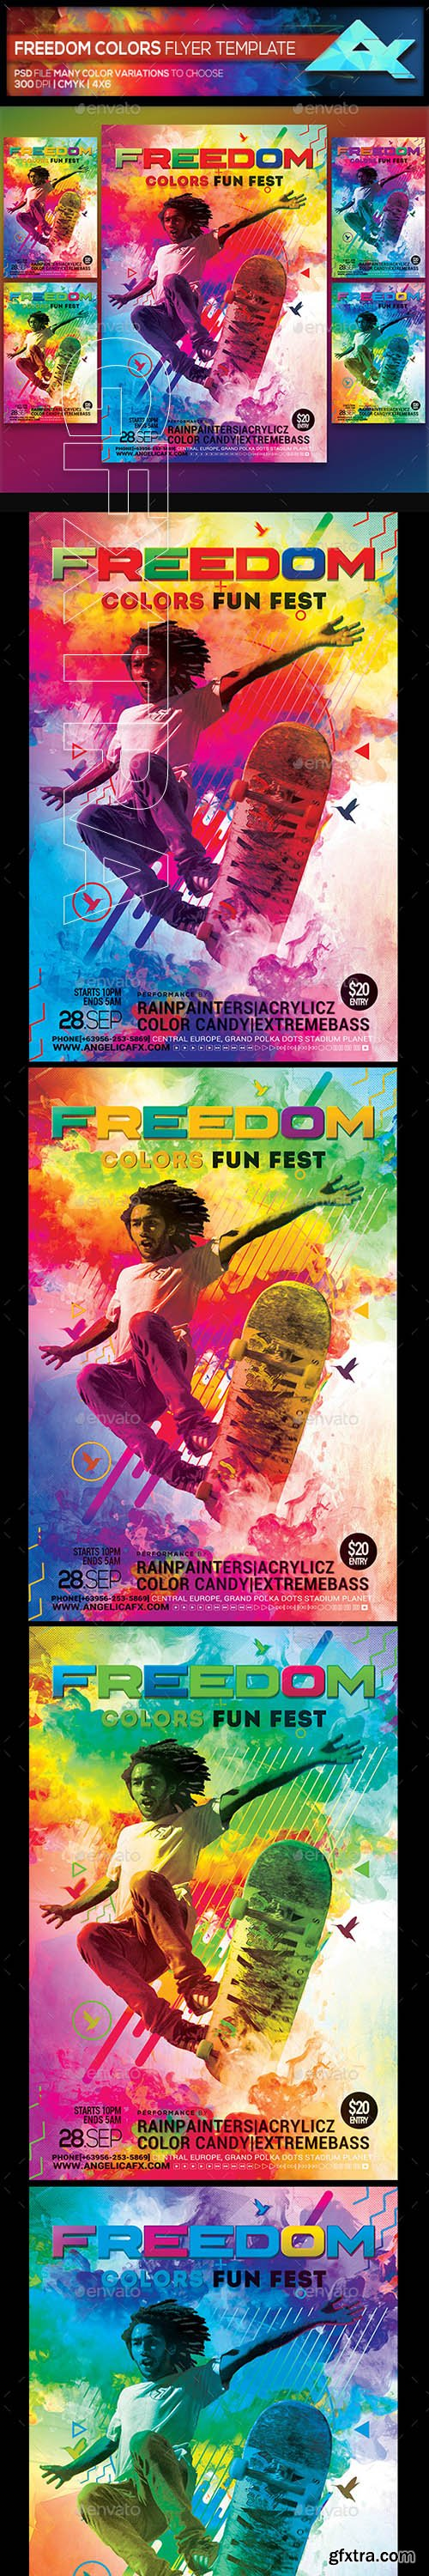 GraphicRiver - Freedom Colors Fun Fest Photoshop Flyer Template 22356183